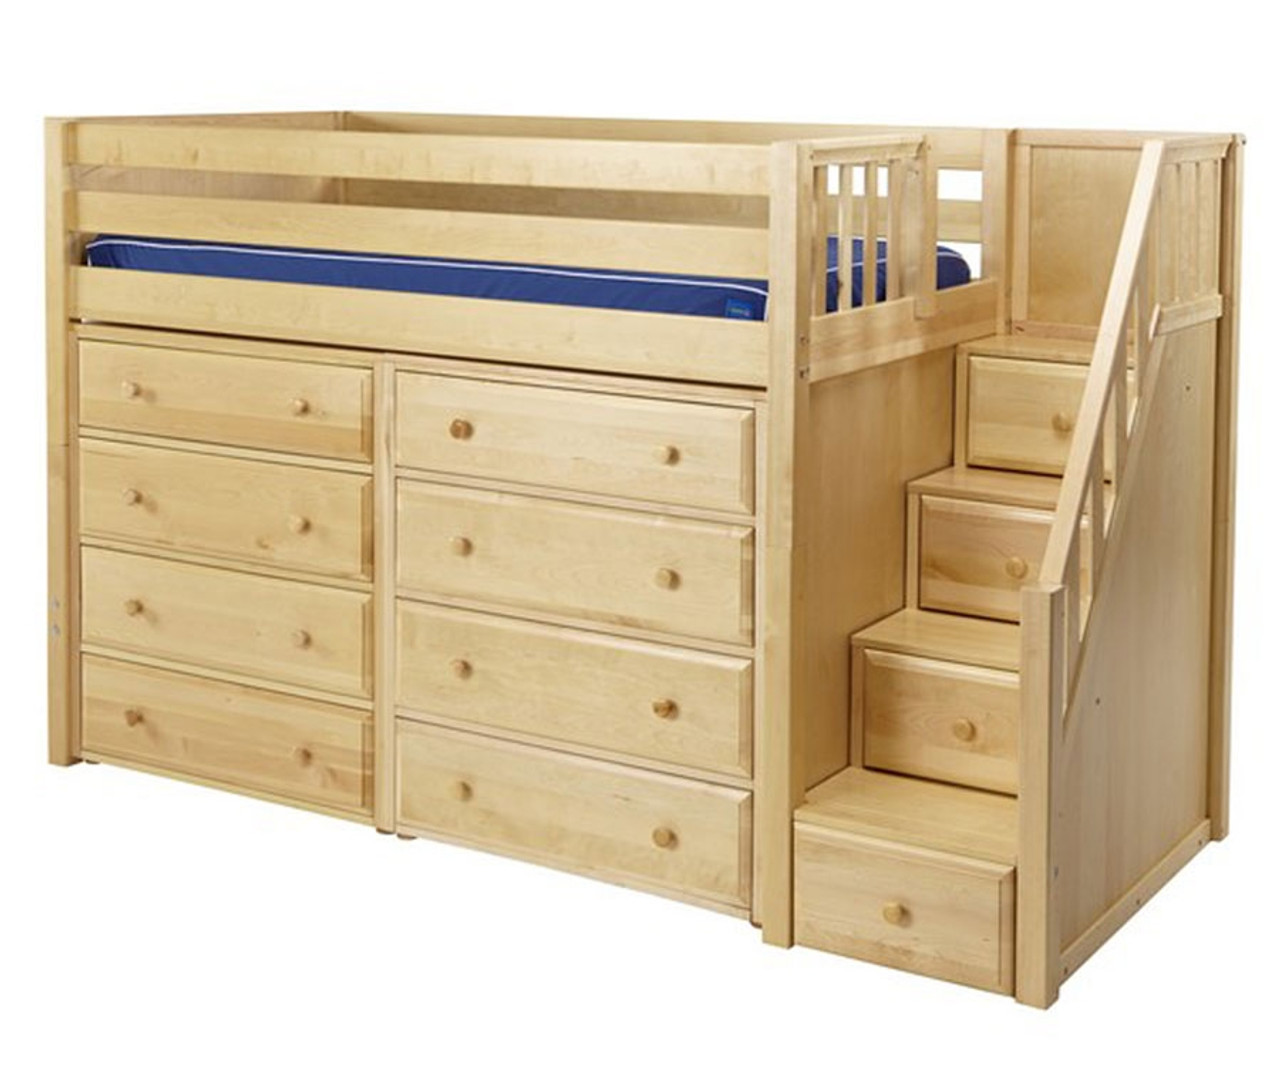 maxtrix galant mid loft bed with stairs dressers twin size natural